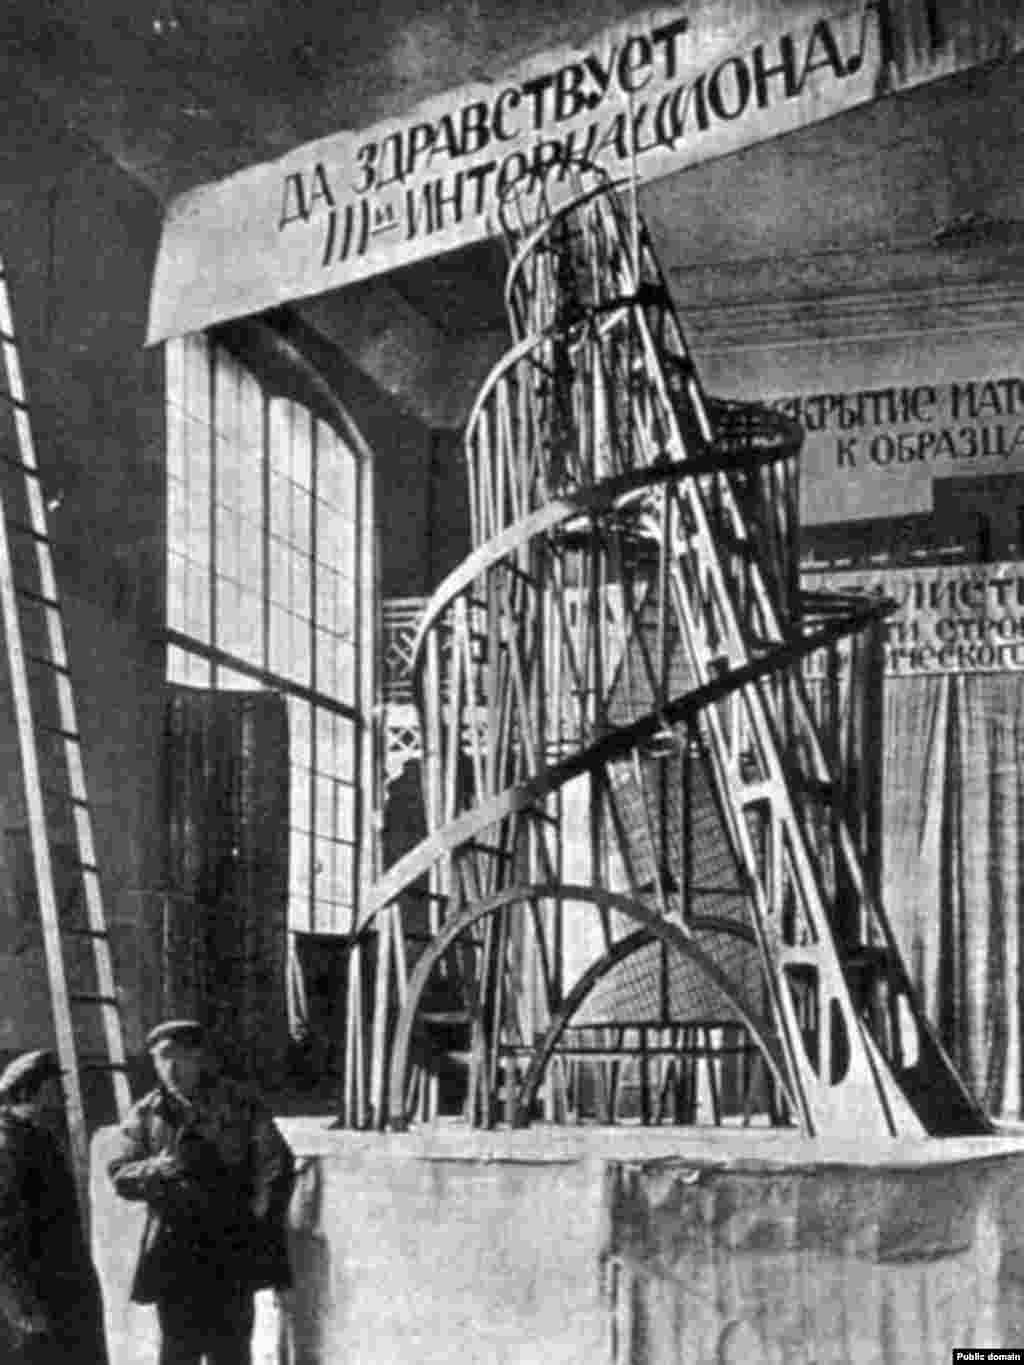 A model of a design by Vladimir Tatlin for a tower to celebrate the Third International, 1920 - Early Soviet artists also attempted to embody the optimism and energy of the revolutionary period in architecture. One of the greatest examples was Vladimir Tatlin's design for the Monument to the Third International, which was never built. Tatlin's design used geometric forms and a dynamic upward spiral to capture a spirit of utopian progress.